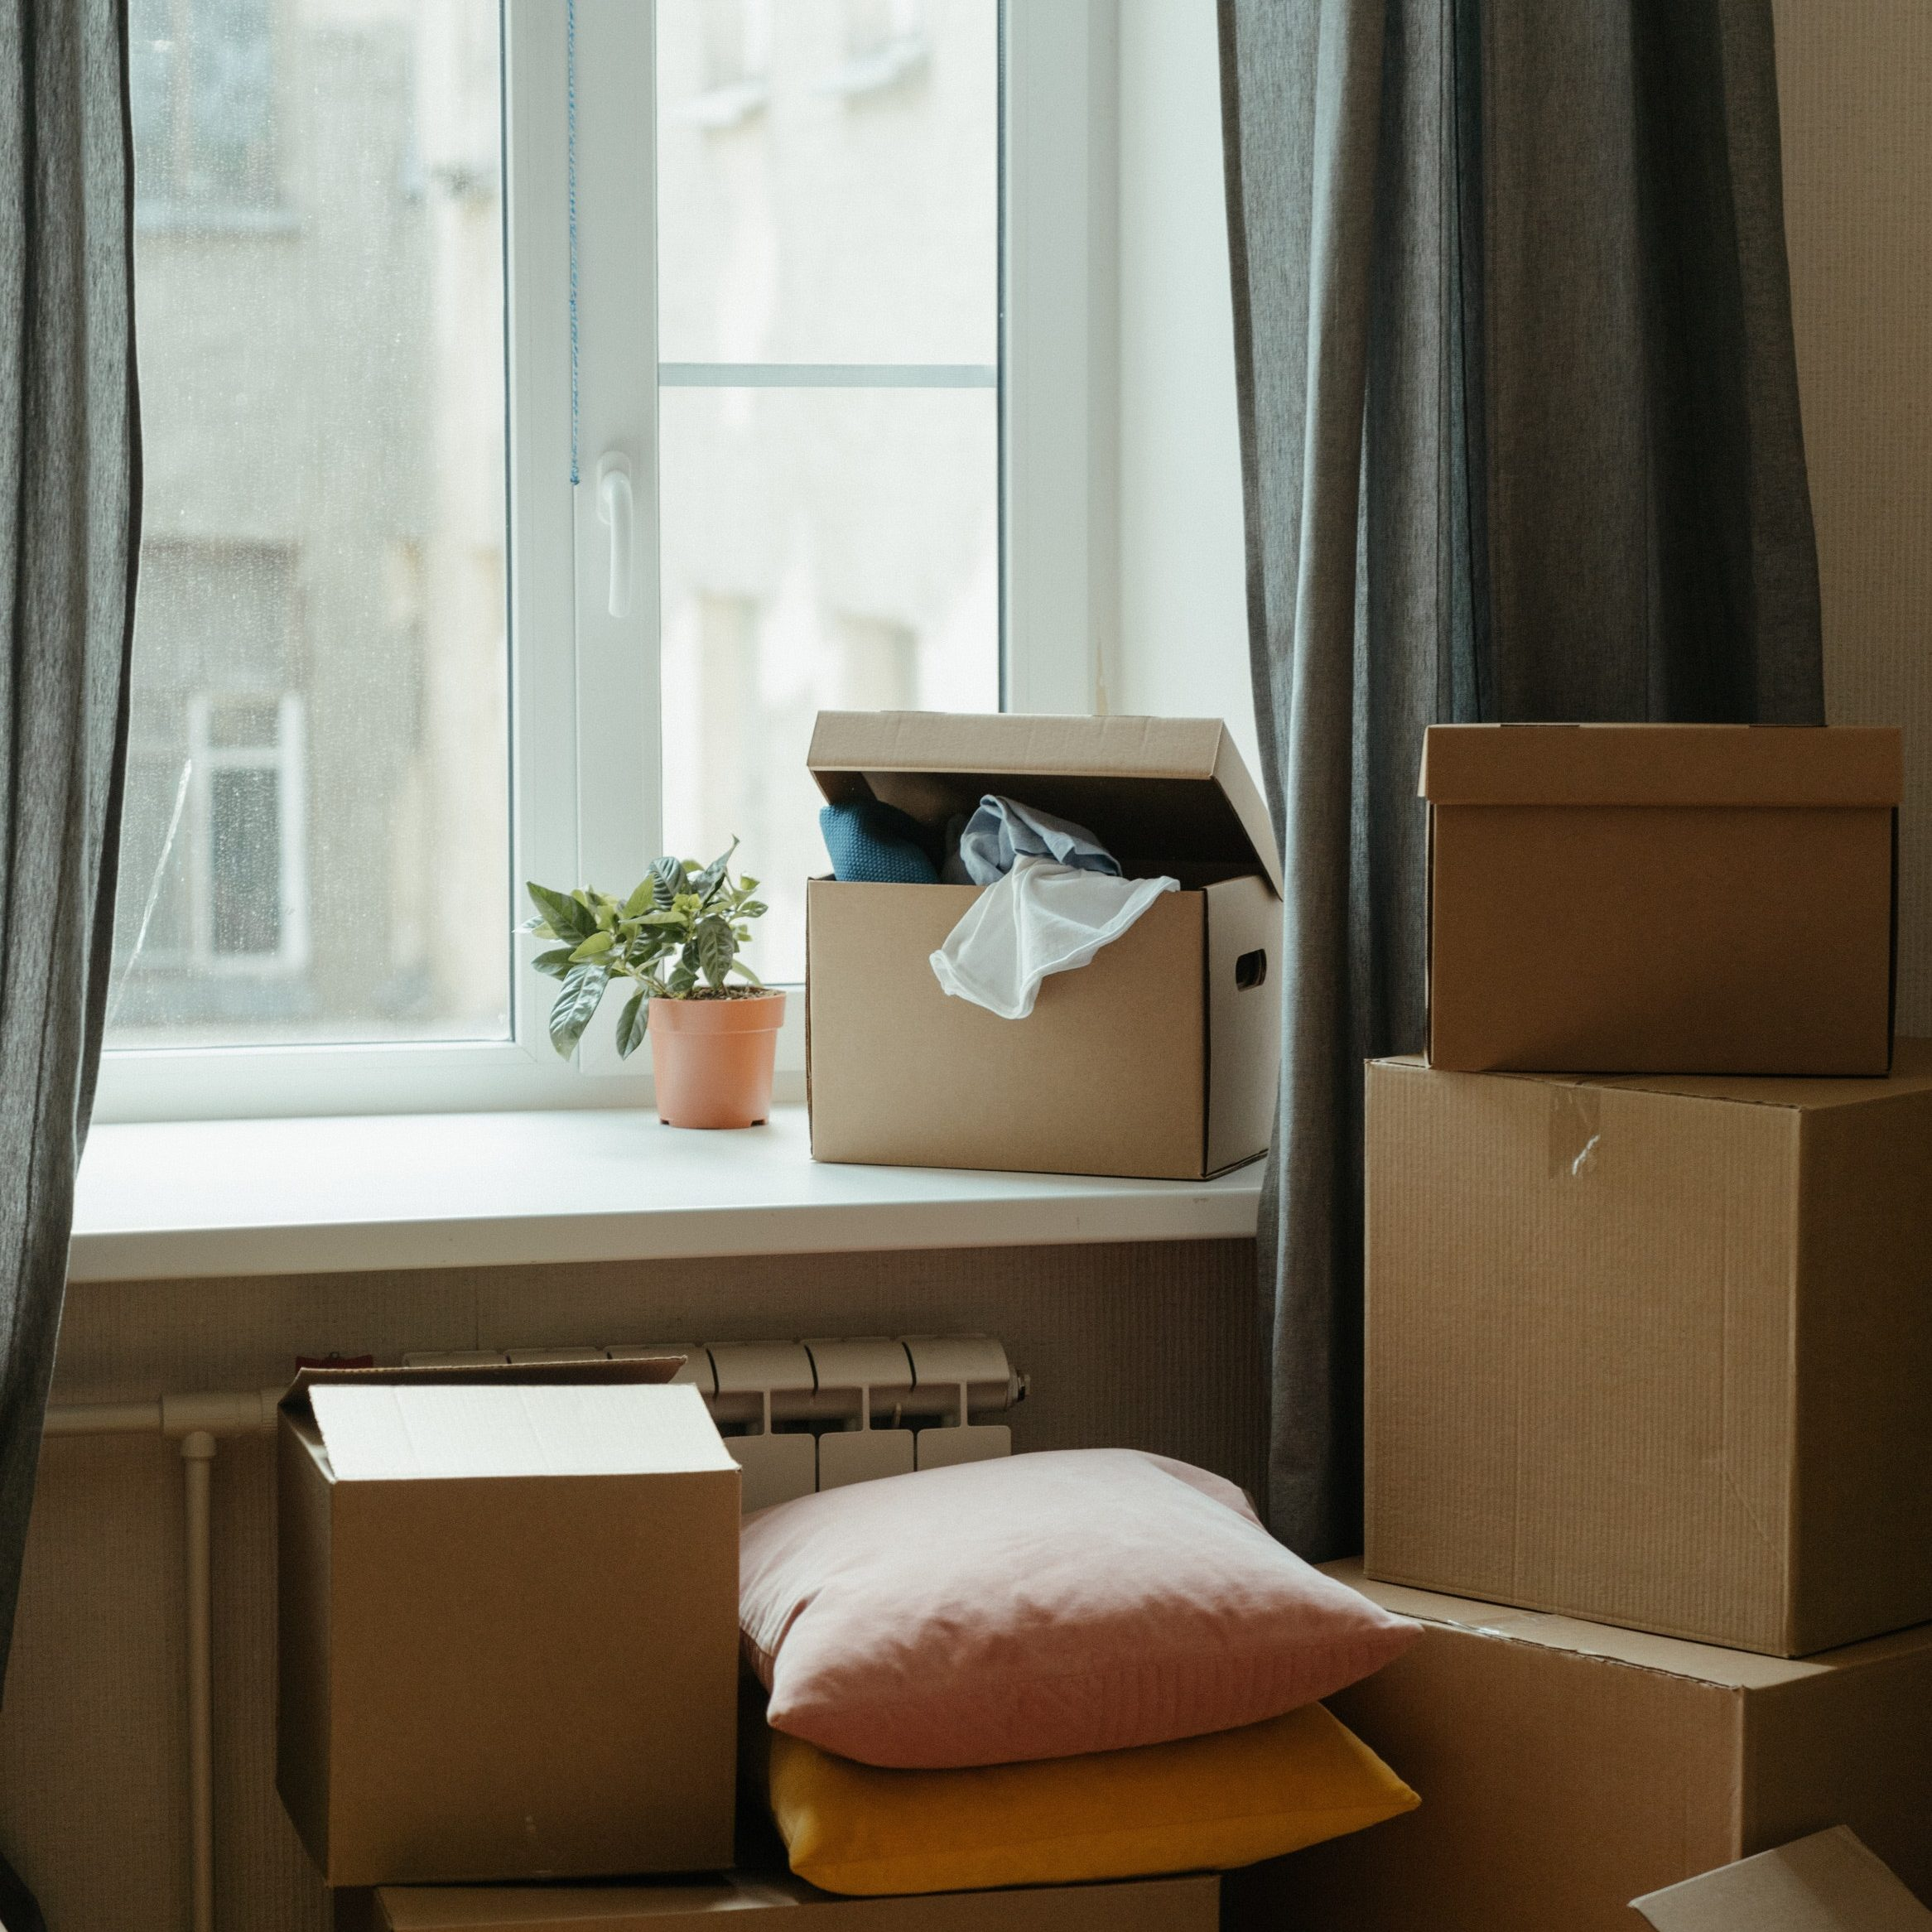 Packing boxes stacked next to a window